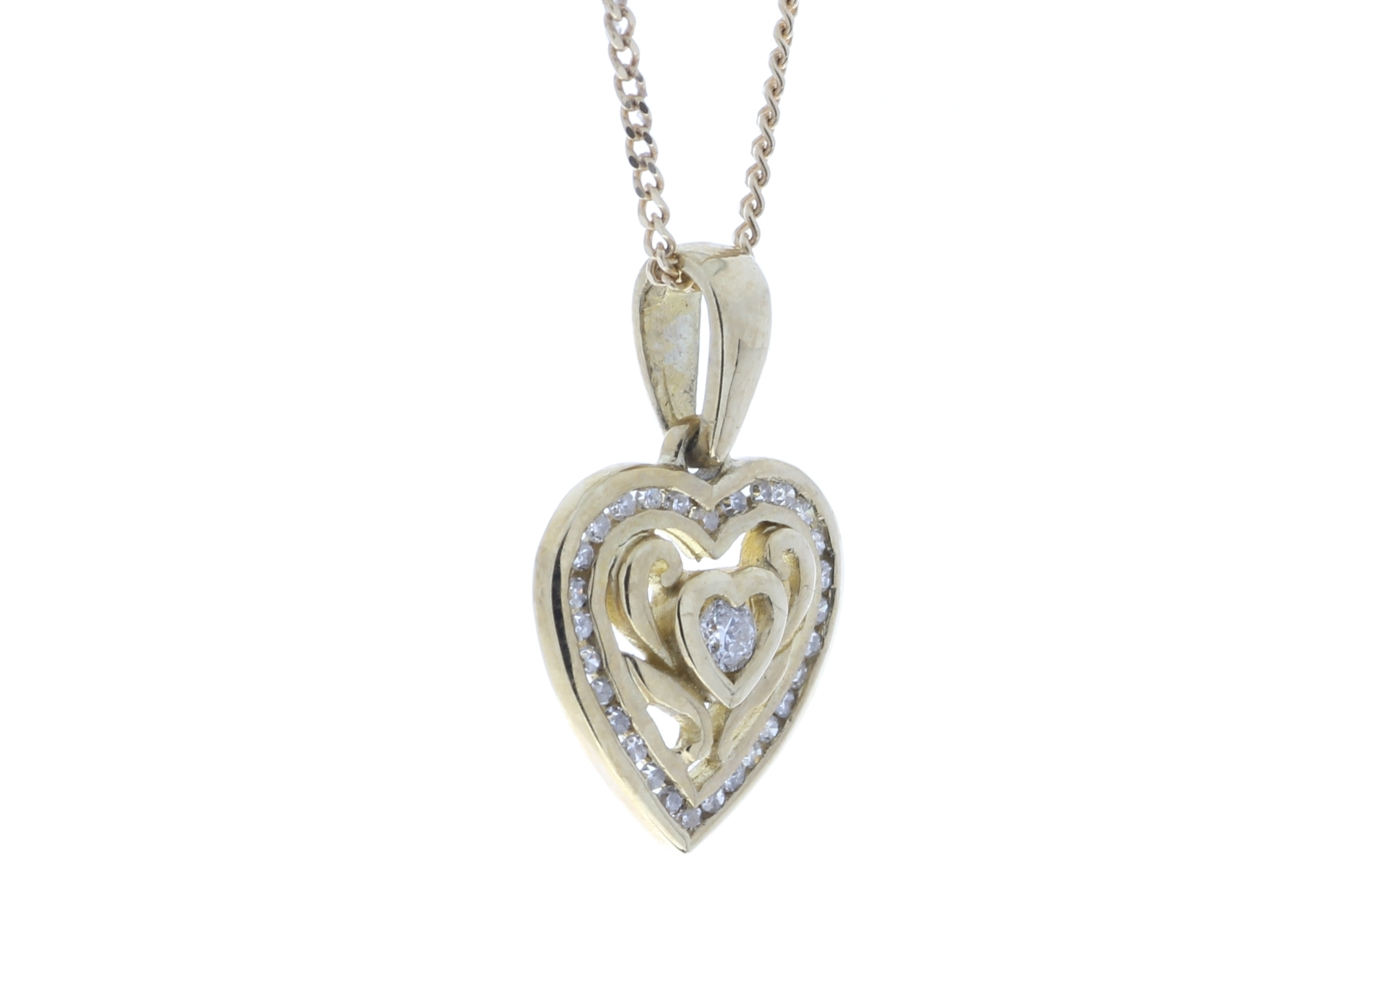 9ct Yellow Gold Heart Pendant Set With Diamonds With Centre Heart and Swirls 0.18 Carats - Image 2 of 4